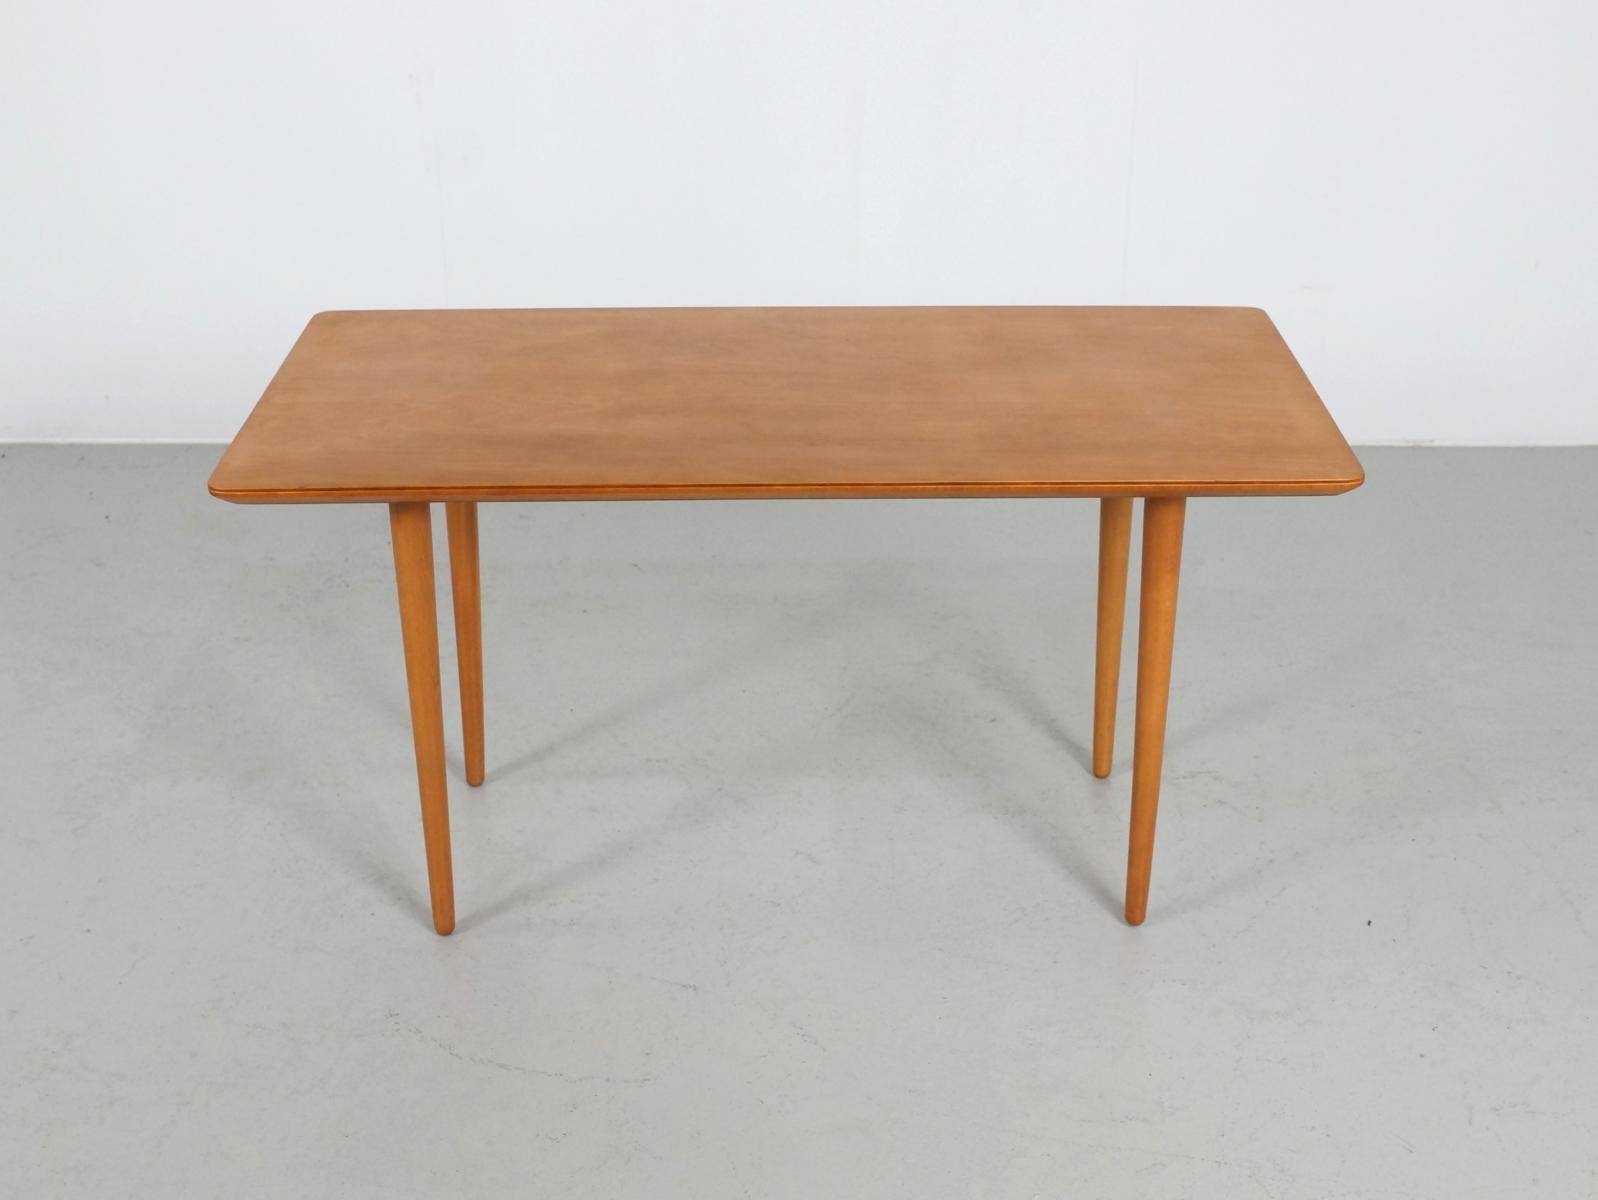 Vintage Italian Beech Coffee Table, 1960S For Sale At Pamono regarding Beech Coffee Tables (Image 27 of 30)